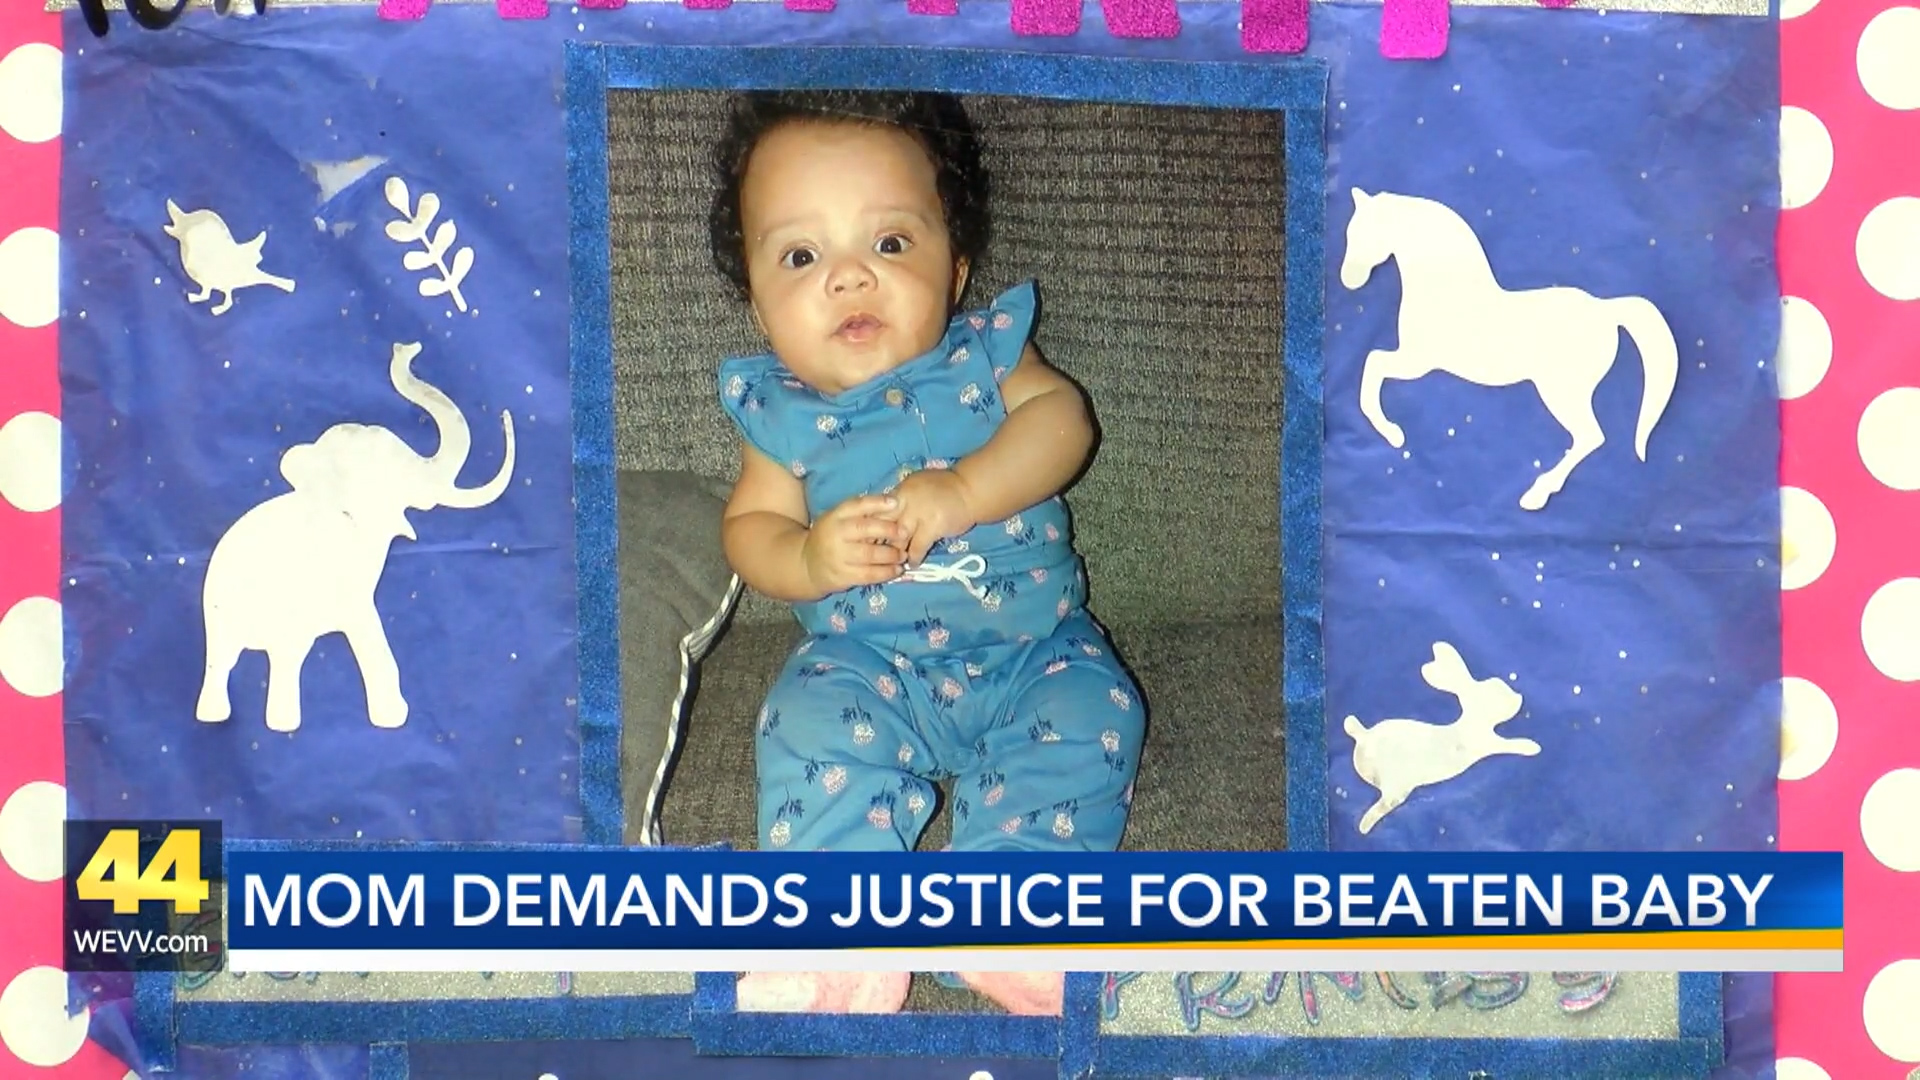 Image for Mom, Community Members Protest for Justice After Baby is Beaten